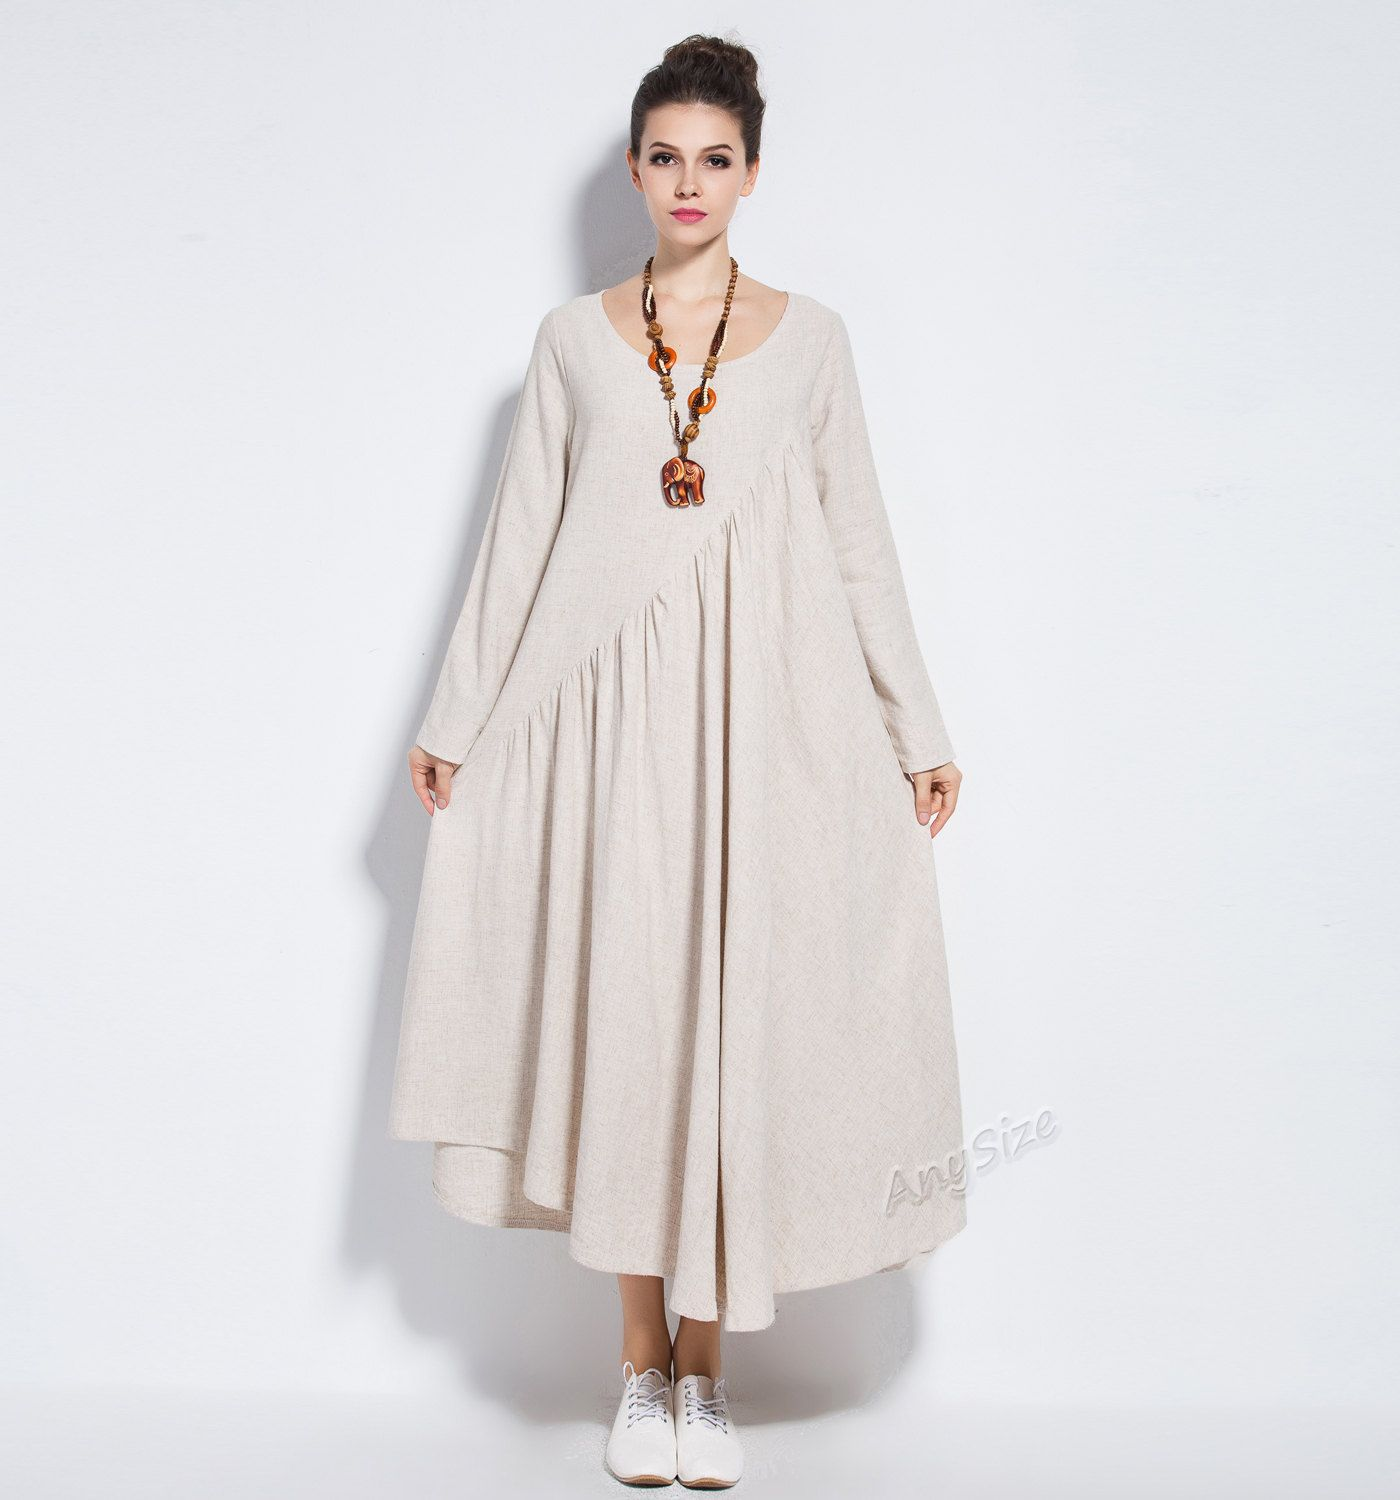 Maxi dress womensu fashion pinterest maxi dresses wardrobes